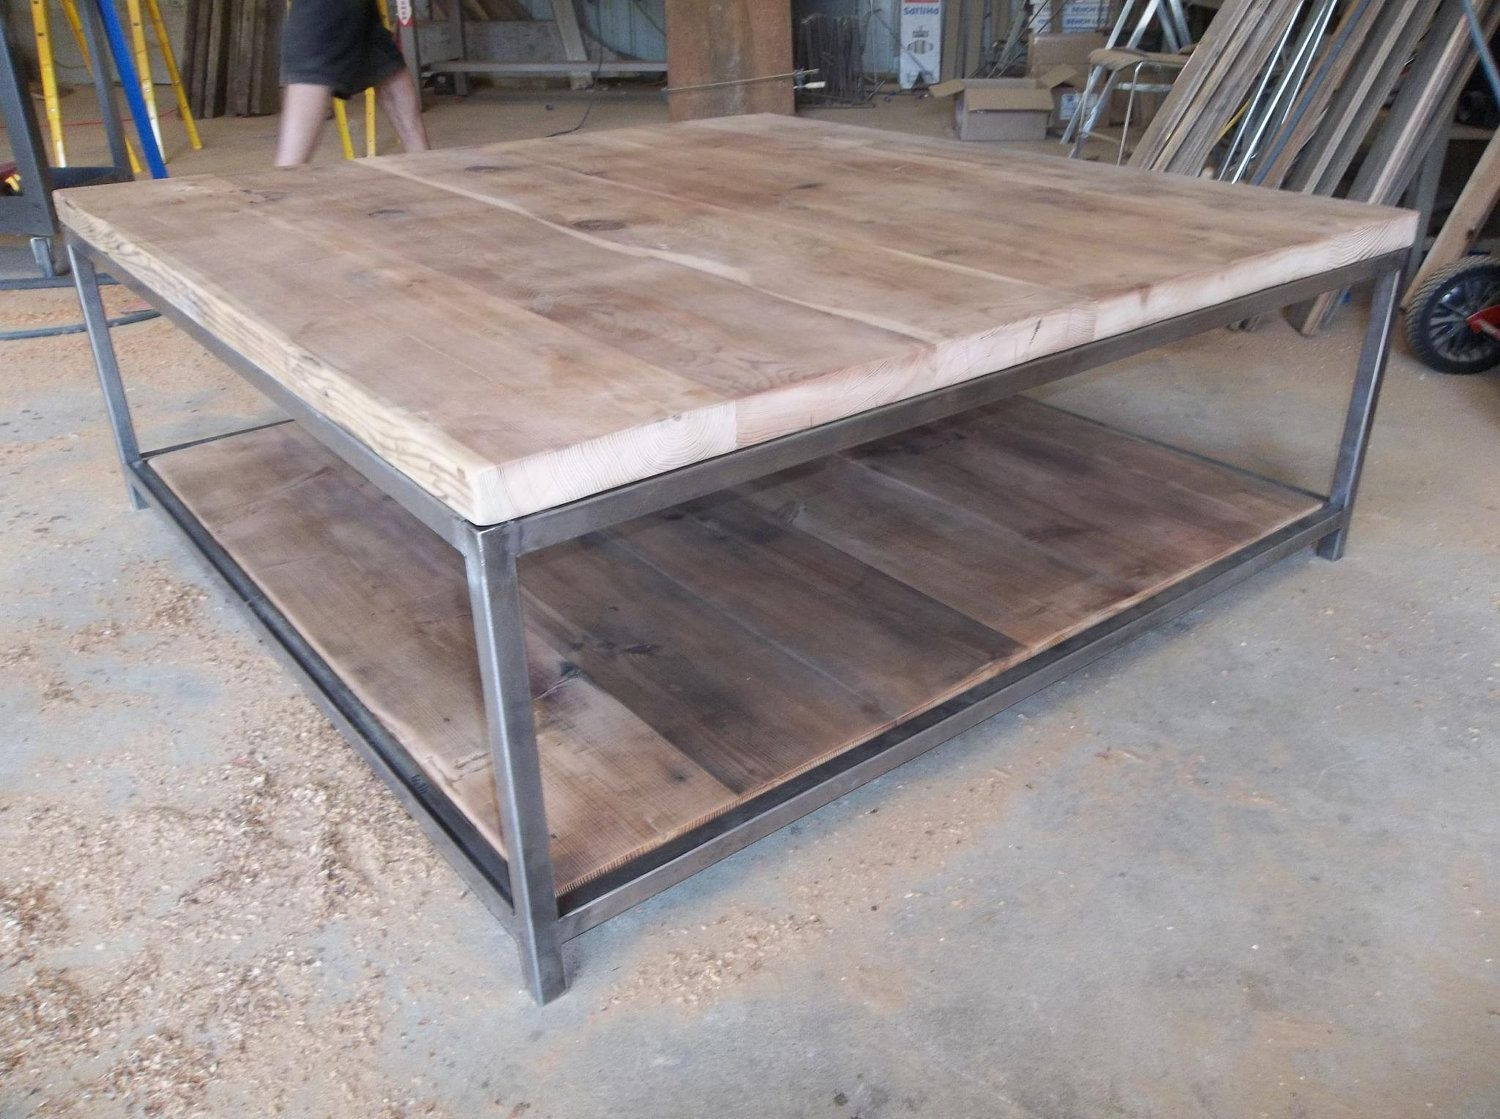 Ordinaire Large Quare Wood Coffee Table With